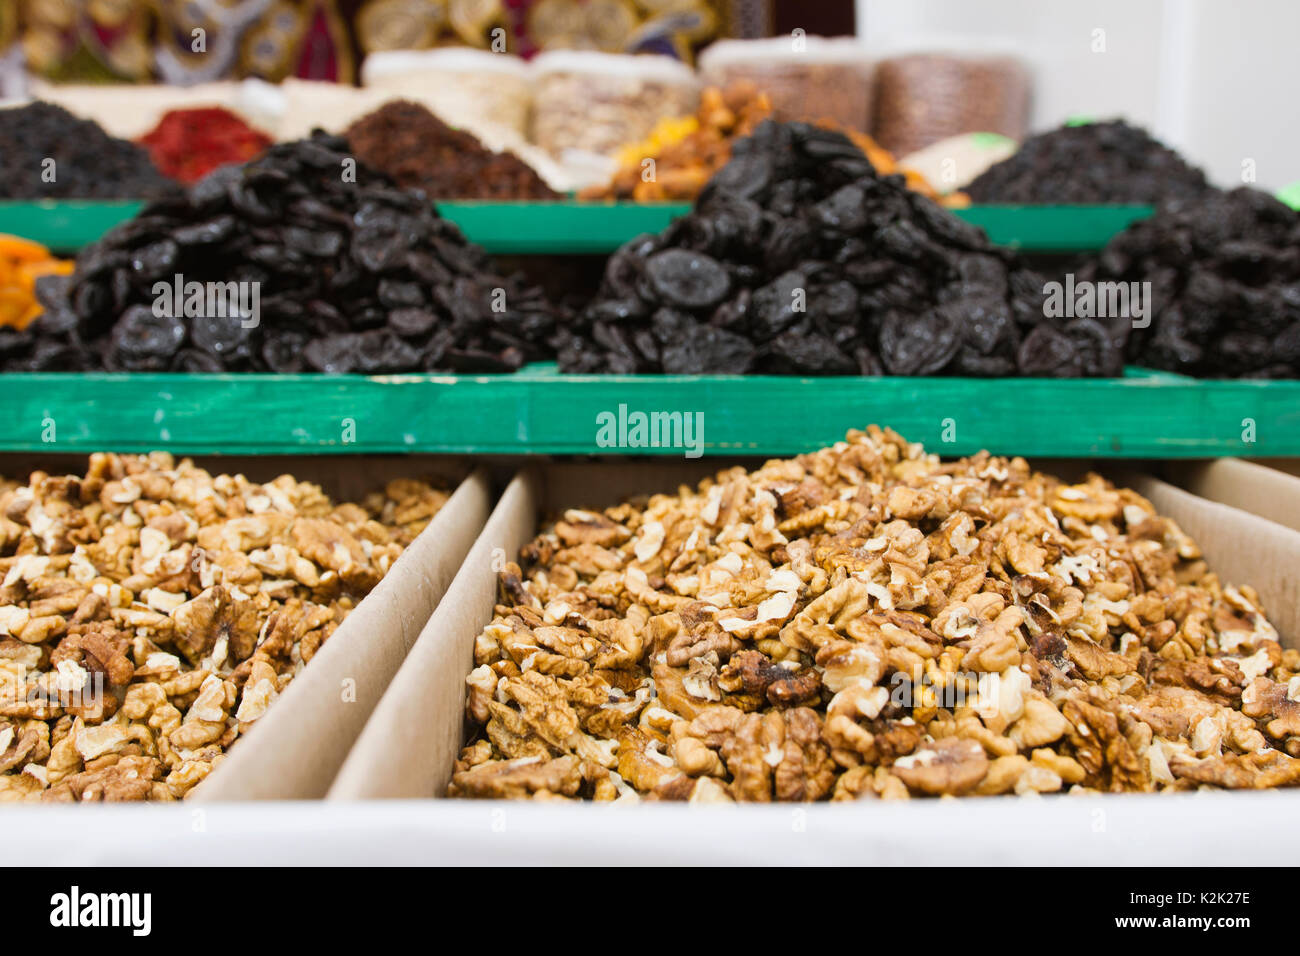 A lot of shelled walnuts on street marcet - Stock Image